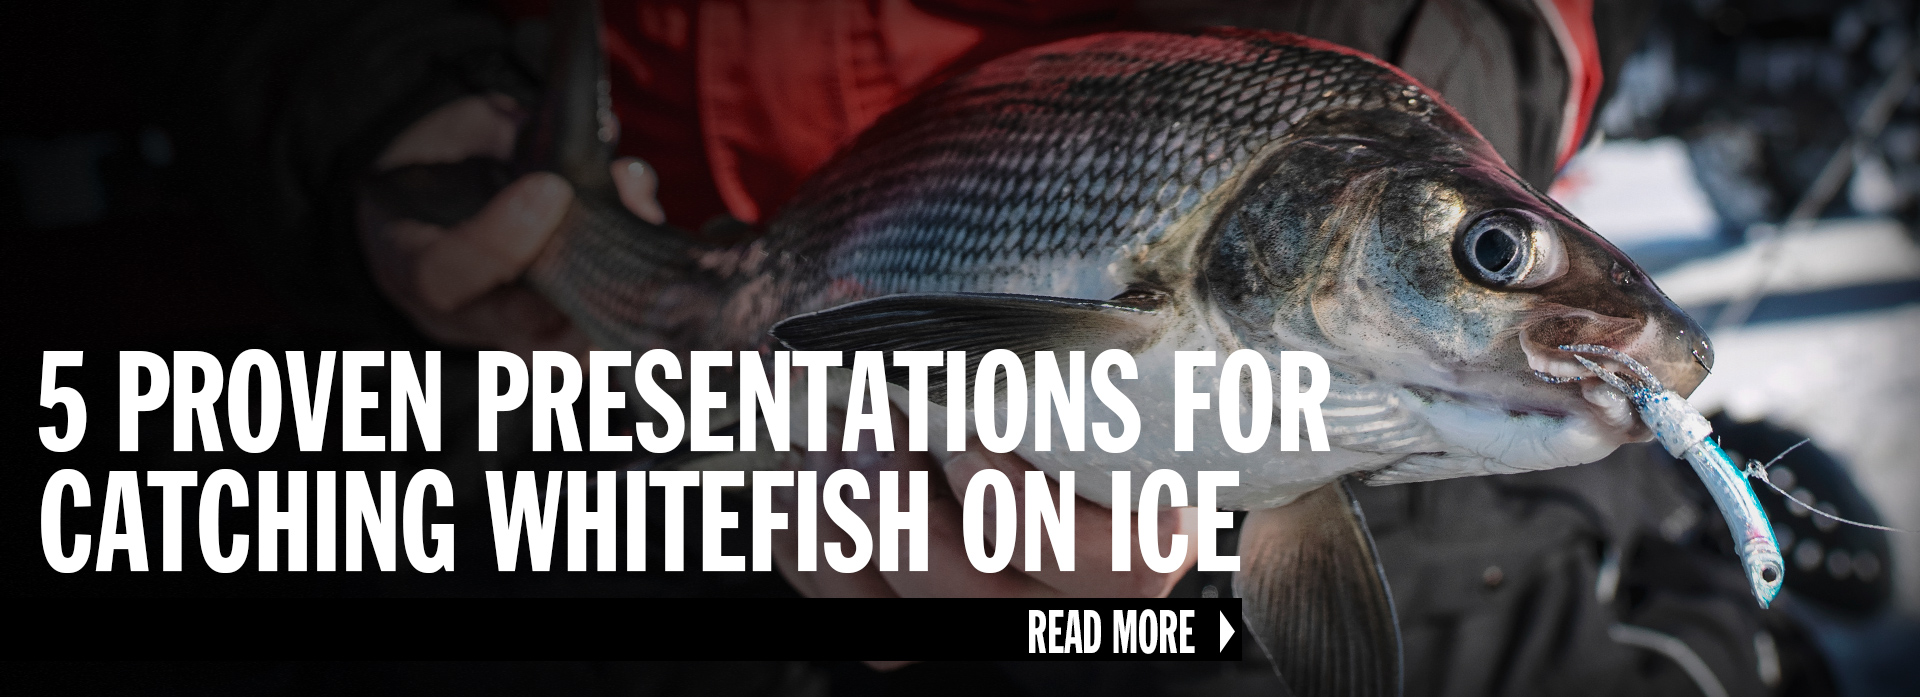 Understand Ice Spoon Differences to Catch More Fish